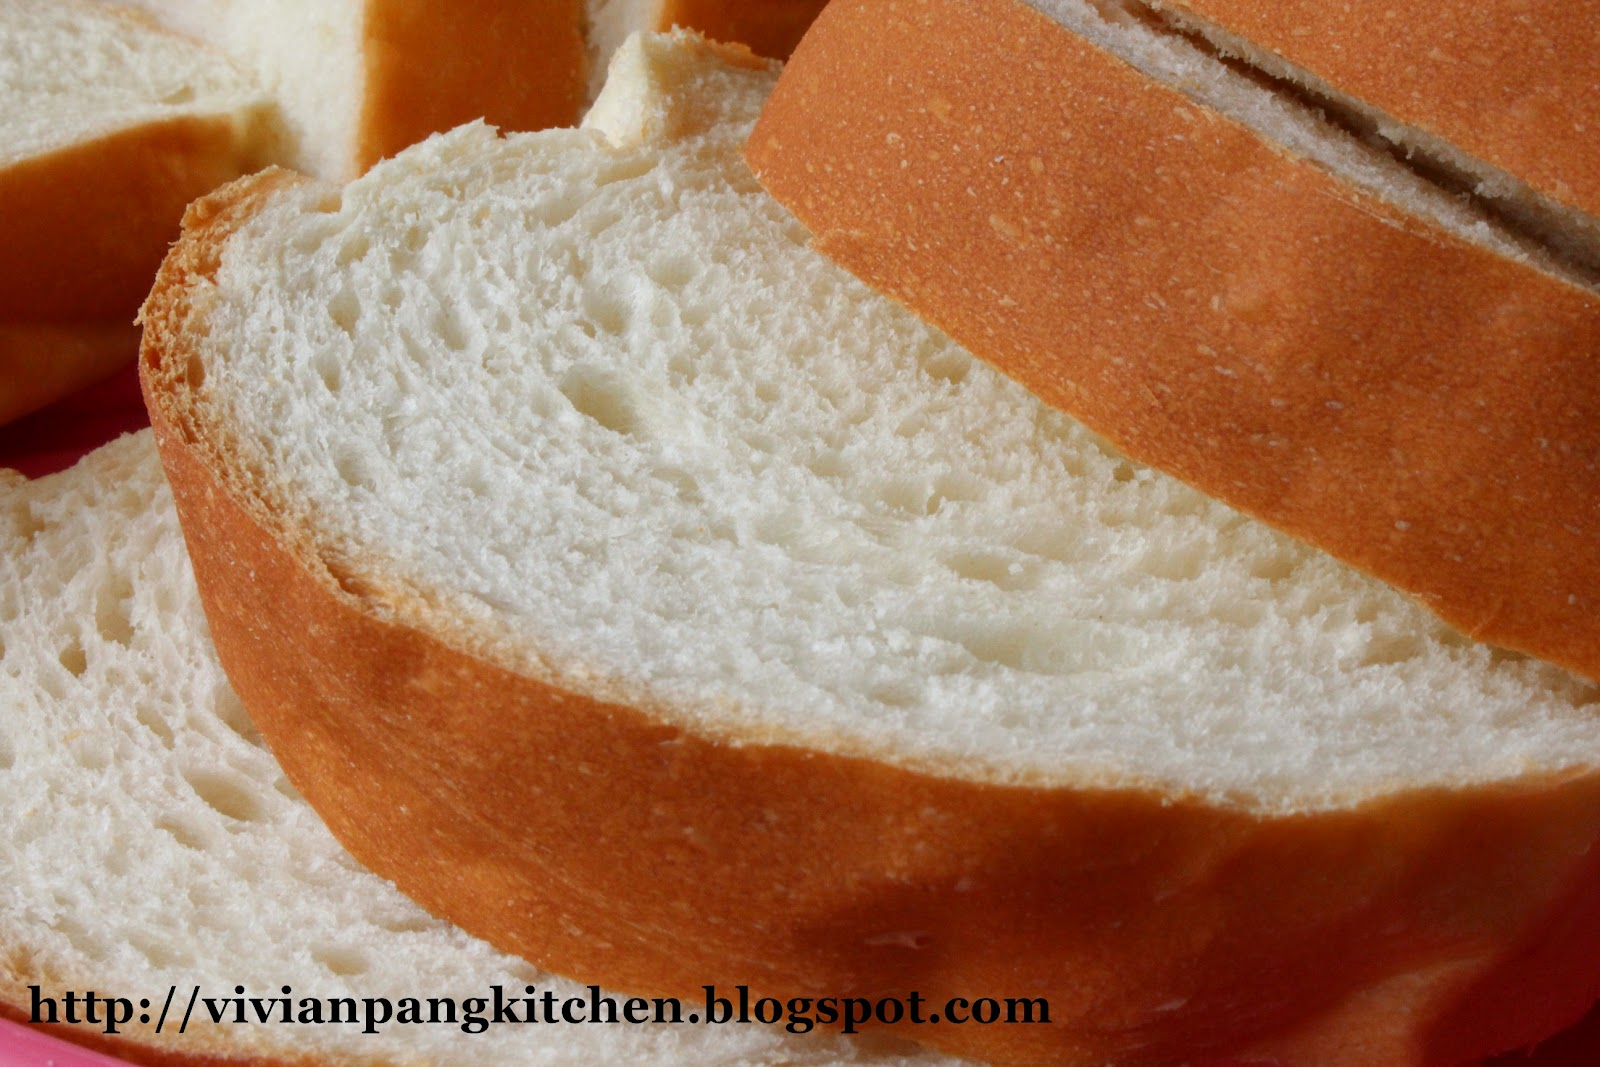 Vivian Pang Kitchen: Milky Loaf Bread/ Straight Dough Method